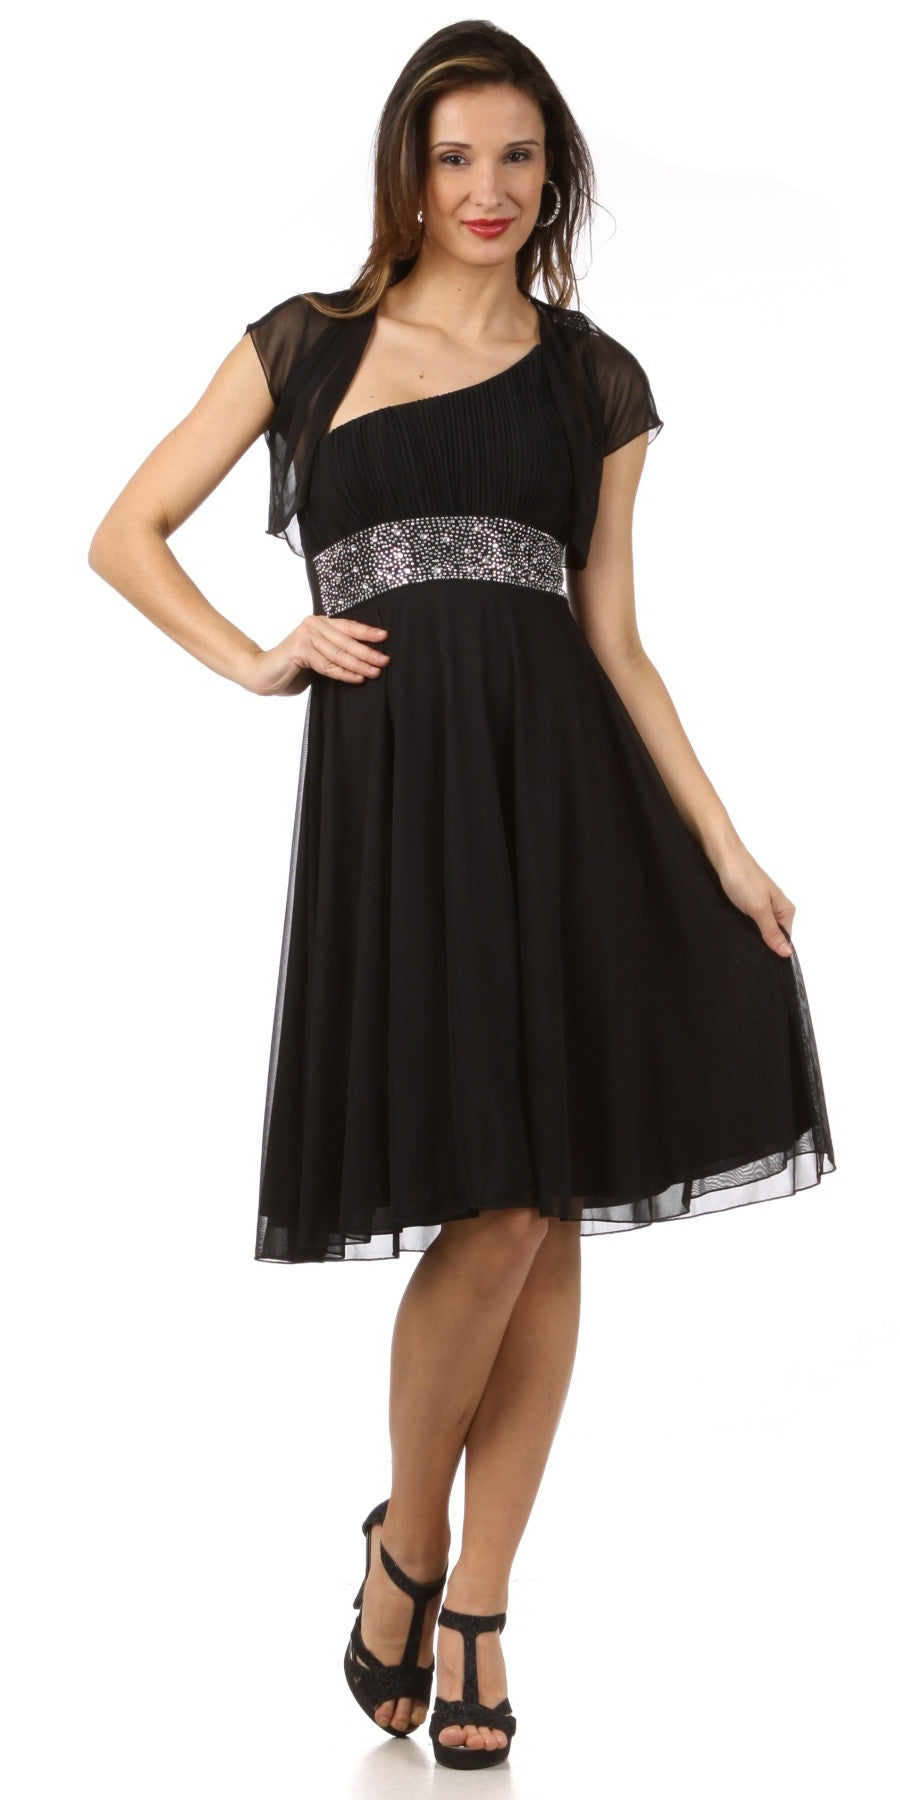 Ruched Bodice Single Strapped Black A Line Cocktail Dress